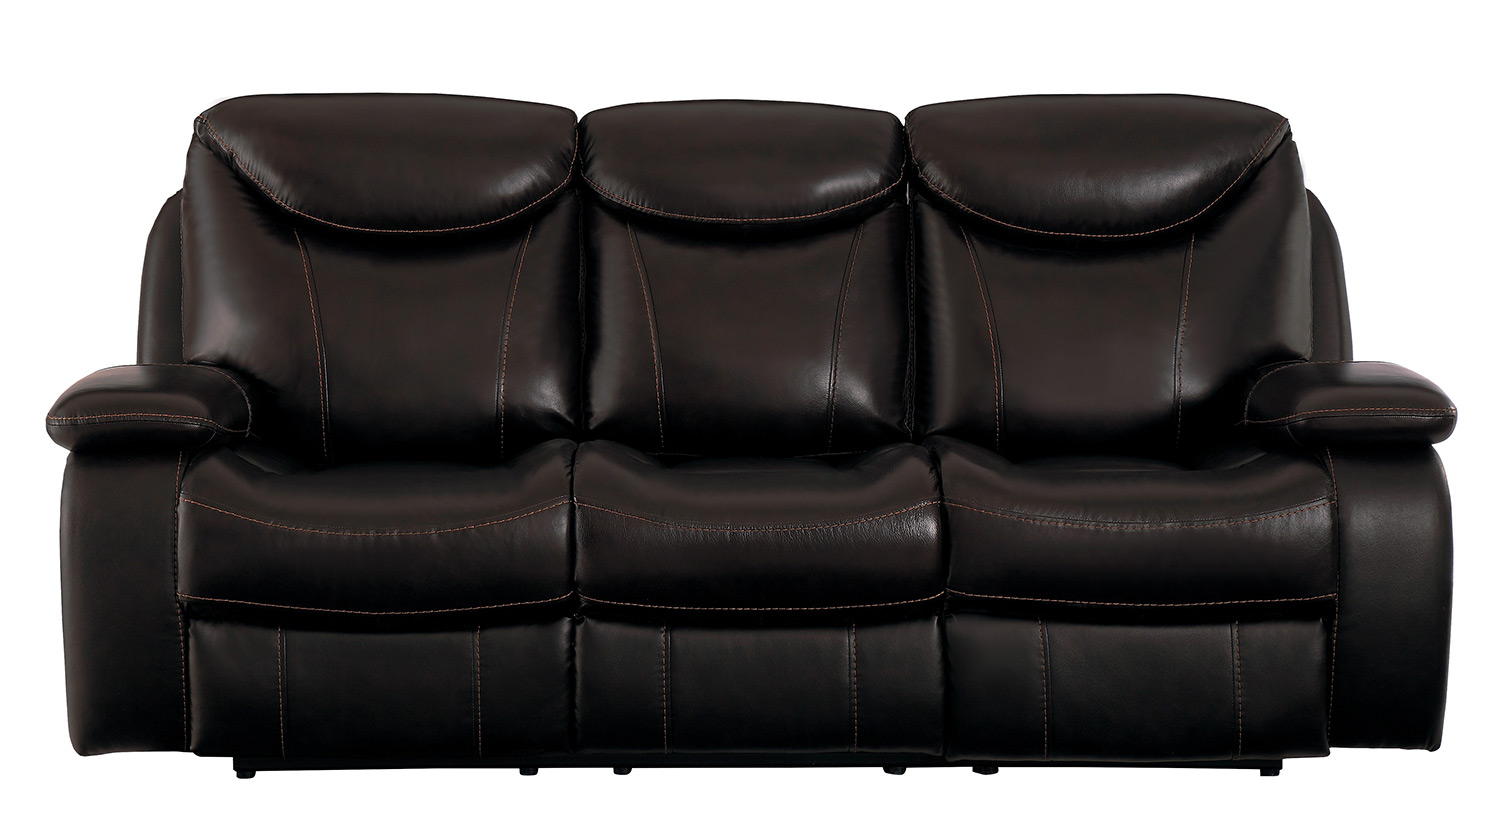 Homelegance Verkin Double Reclining Sofa - Dark Brown